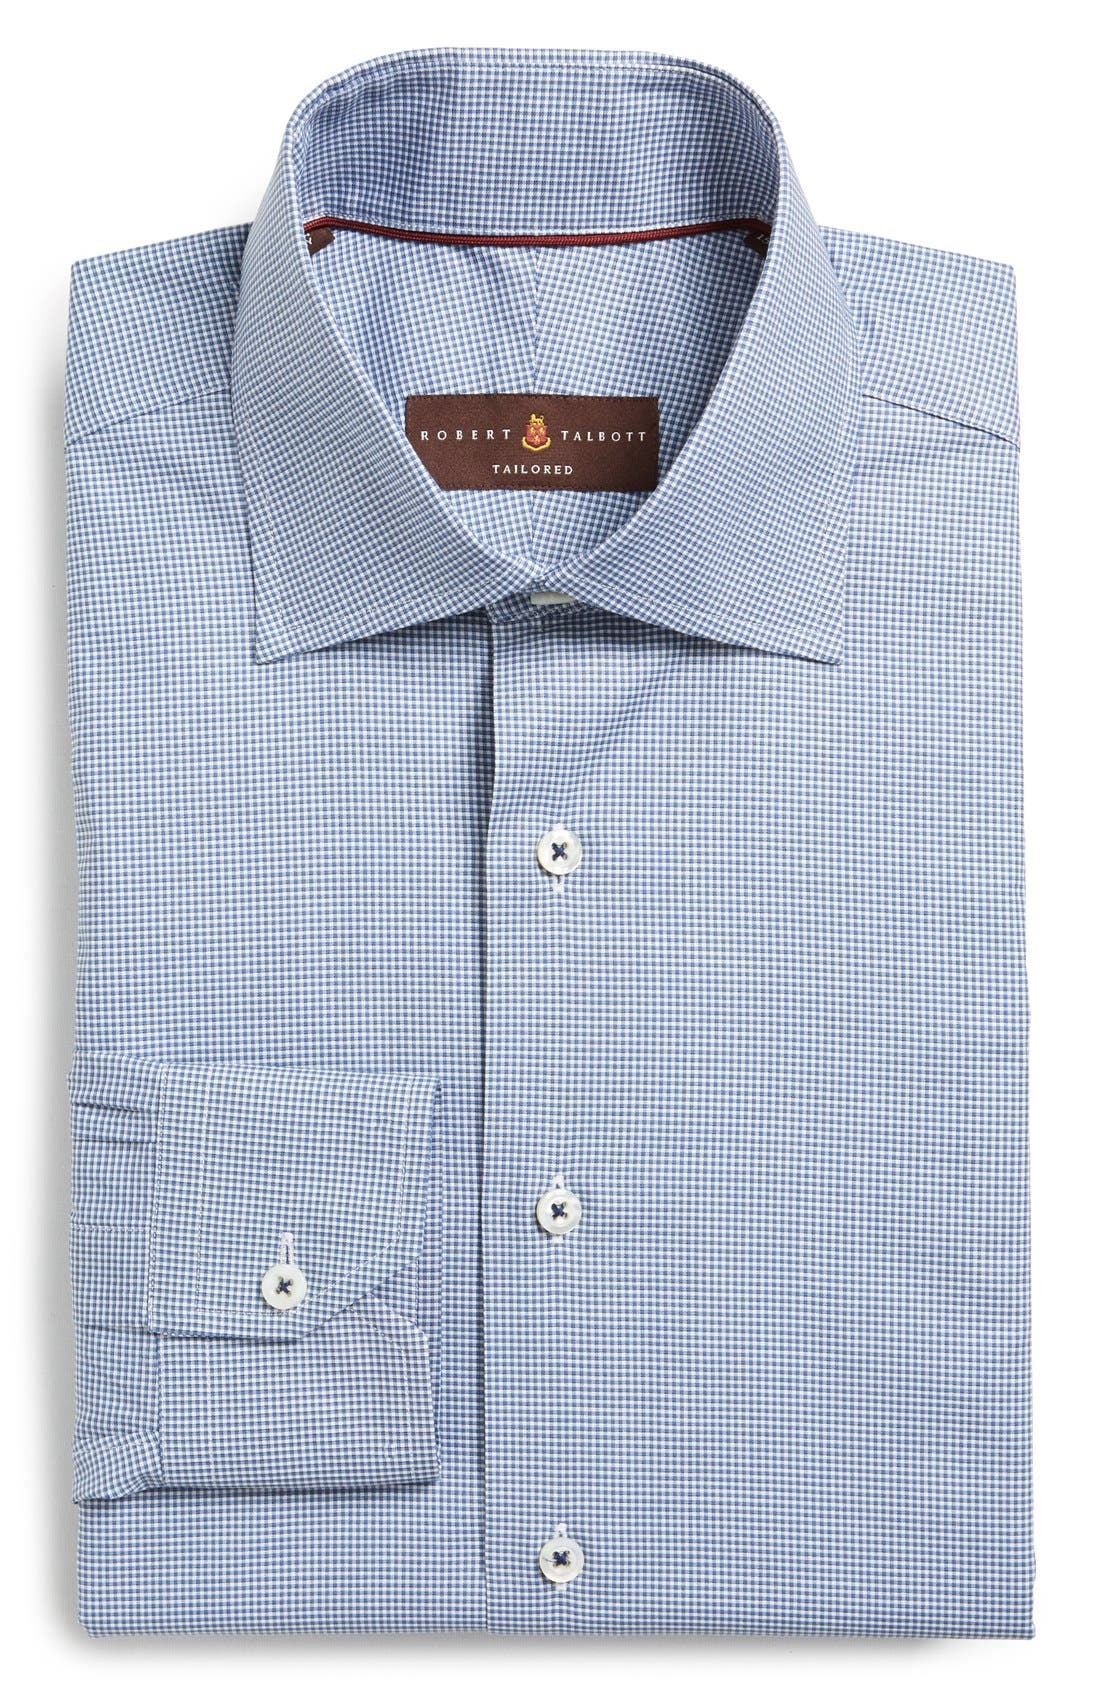 Alternate Image 1 Selected - Robert Talbott Tailored Fit Check Dress Shirt